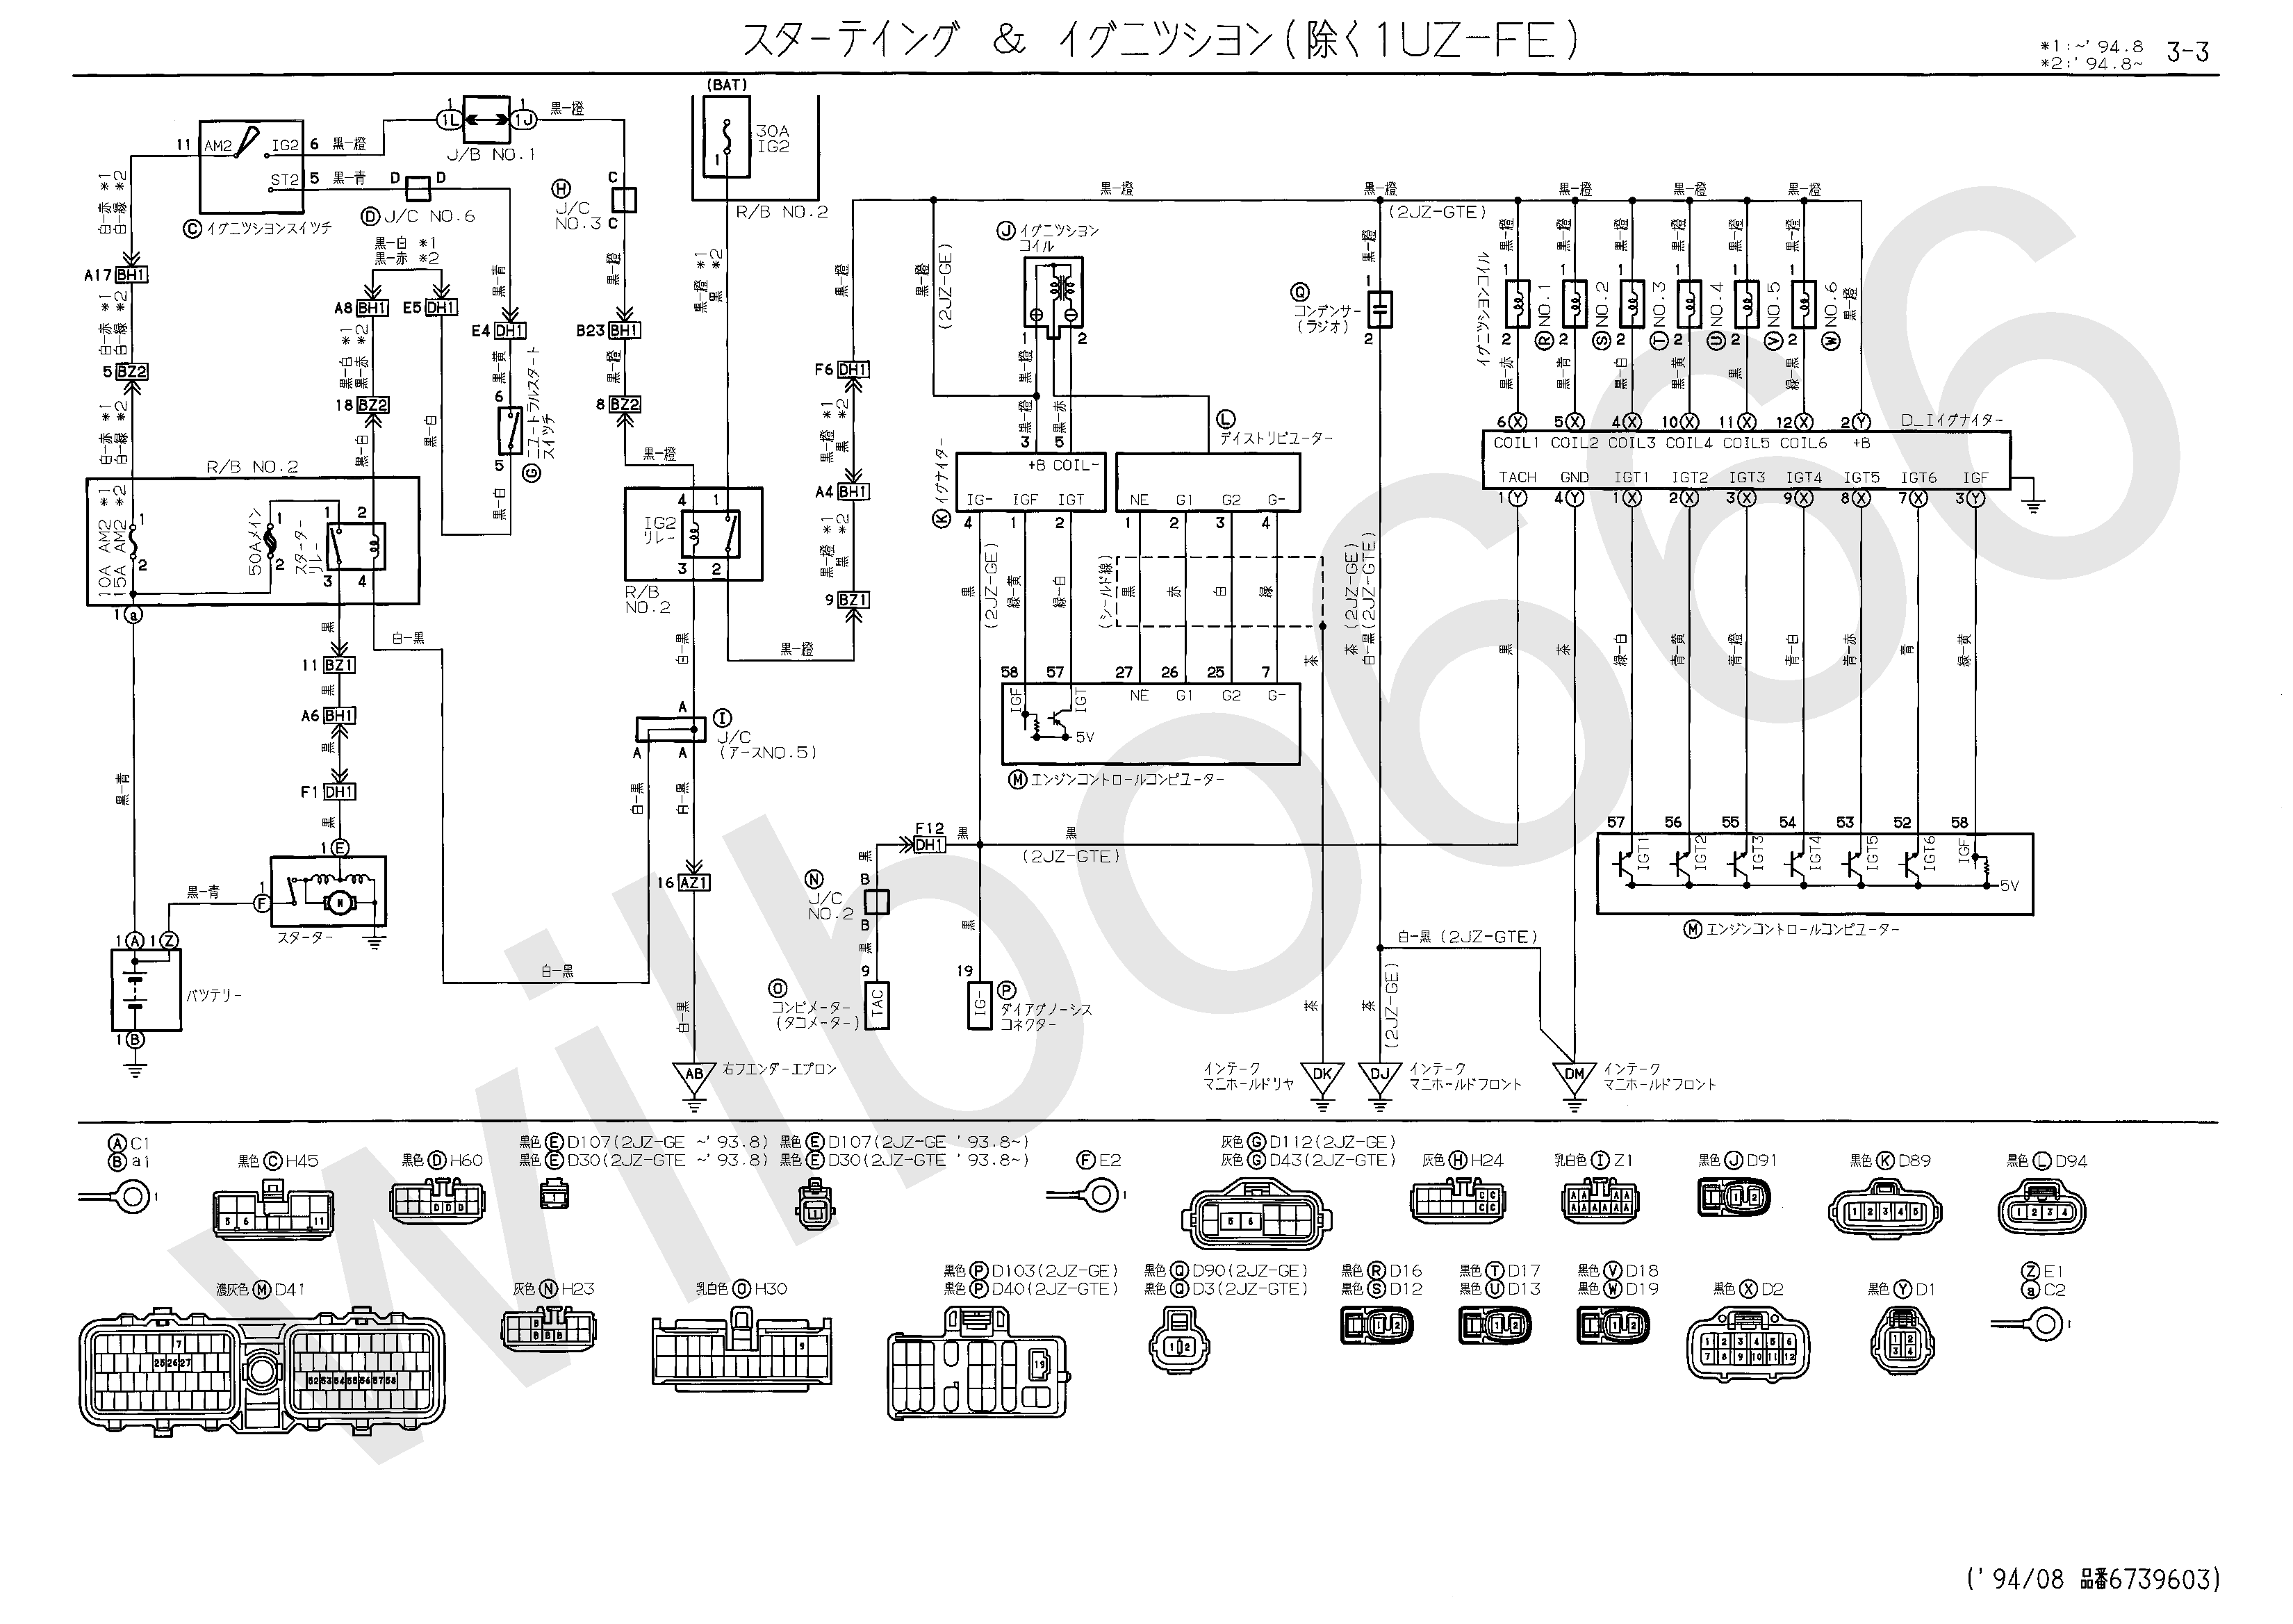 JZS14%23%2C UZS14%23 Electrical Wiring Diagram 6739604 3 3?resize\\\\\\\\\\\\\\\\\\\\\\\\\\\\\\\\\\\\\\\\\\\\\\\\\\\\\\\\\\\\\\\\\\\\\\\\\\\\\\\\\\\\\\\\\\\\\\\\\\\\\\\\\\\\\\\\\\\\\\\\\\\\\\\\\\\\\\\\\\\\\\\\\\\\\\\\\\\\\\\\\\\\\\\\\\\\\\\\\\\\\\\\\\\\\\\\\\\\\\\\\\\\\\\\\\\\\\\\\\\\\\\\\\\\\\\\\\\\\\\\\\\\\\\\\\\\\\\\\\\\\\\\\\\\\\\\\\\\\\\\\\\\\\\\\\\\\\\\\\\\\\\\\\\\\\\\\\\\\\\\\\\\\\\\\\\\\\\\\\\\\\\\\\\\\\\\\\\\\\\\\\\\\\\\\\\\\\\\\\\\\\\\\\\\\\\\\\\\\\\\\\\\\\\\\\\\\\\\\\\\\\\\\\\\\\\\\\\\\\\\\\\\\\\\\=665%2C471 rb26 wiring diagram rb26 wiring harness diagram \u2022 wiring diagrams rb25det wiring diagram at mifinder.co